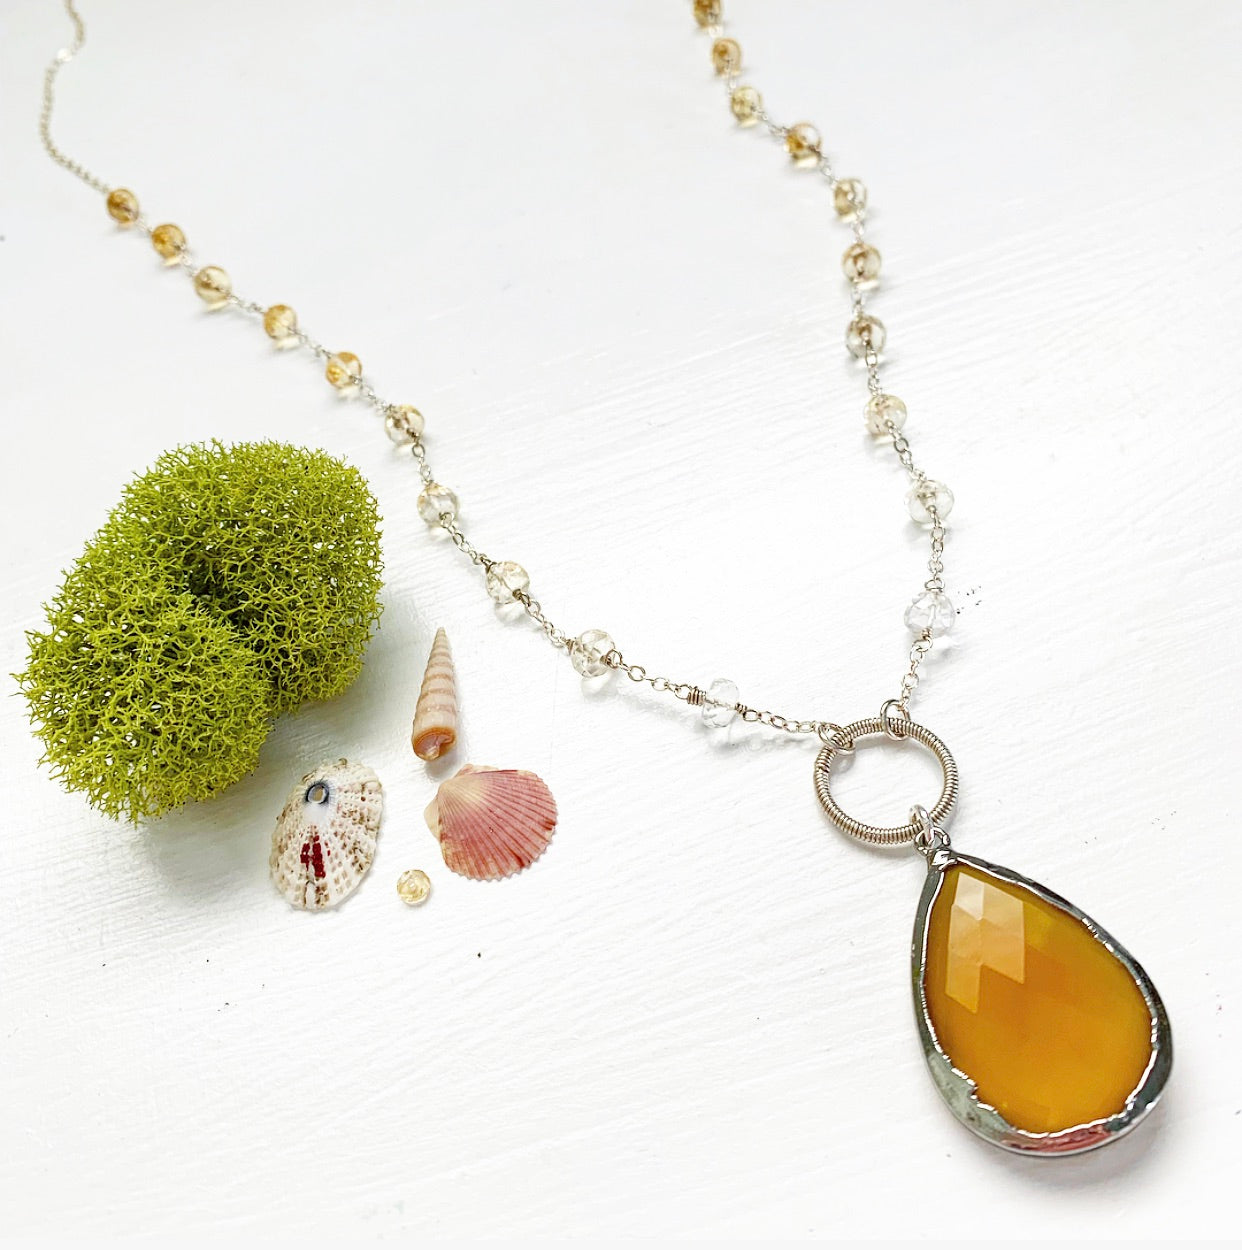 773-One of a Kind Gemstone Necklace